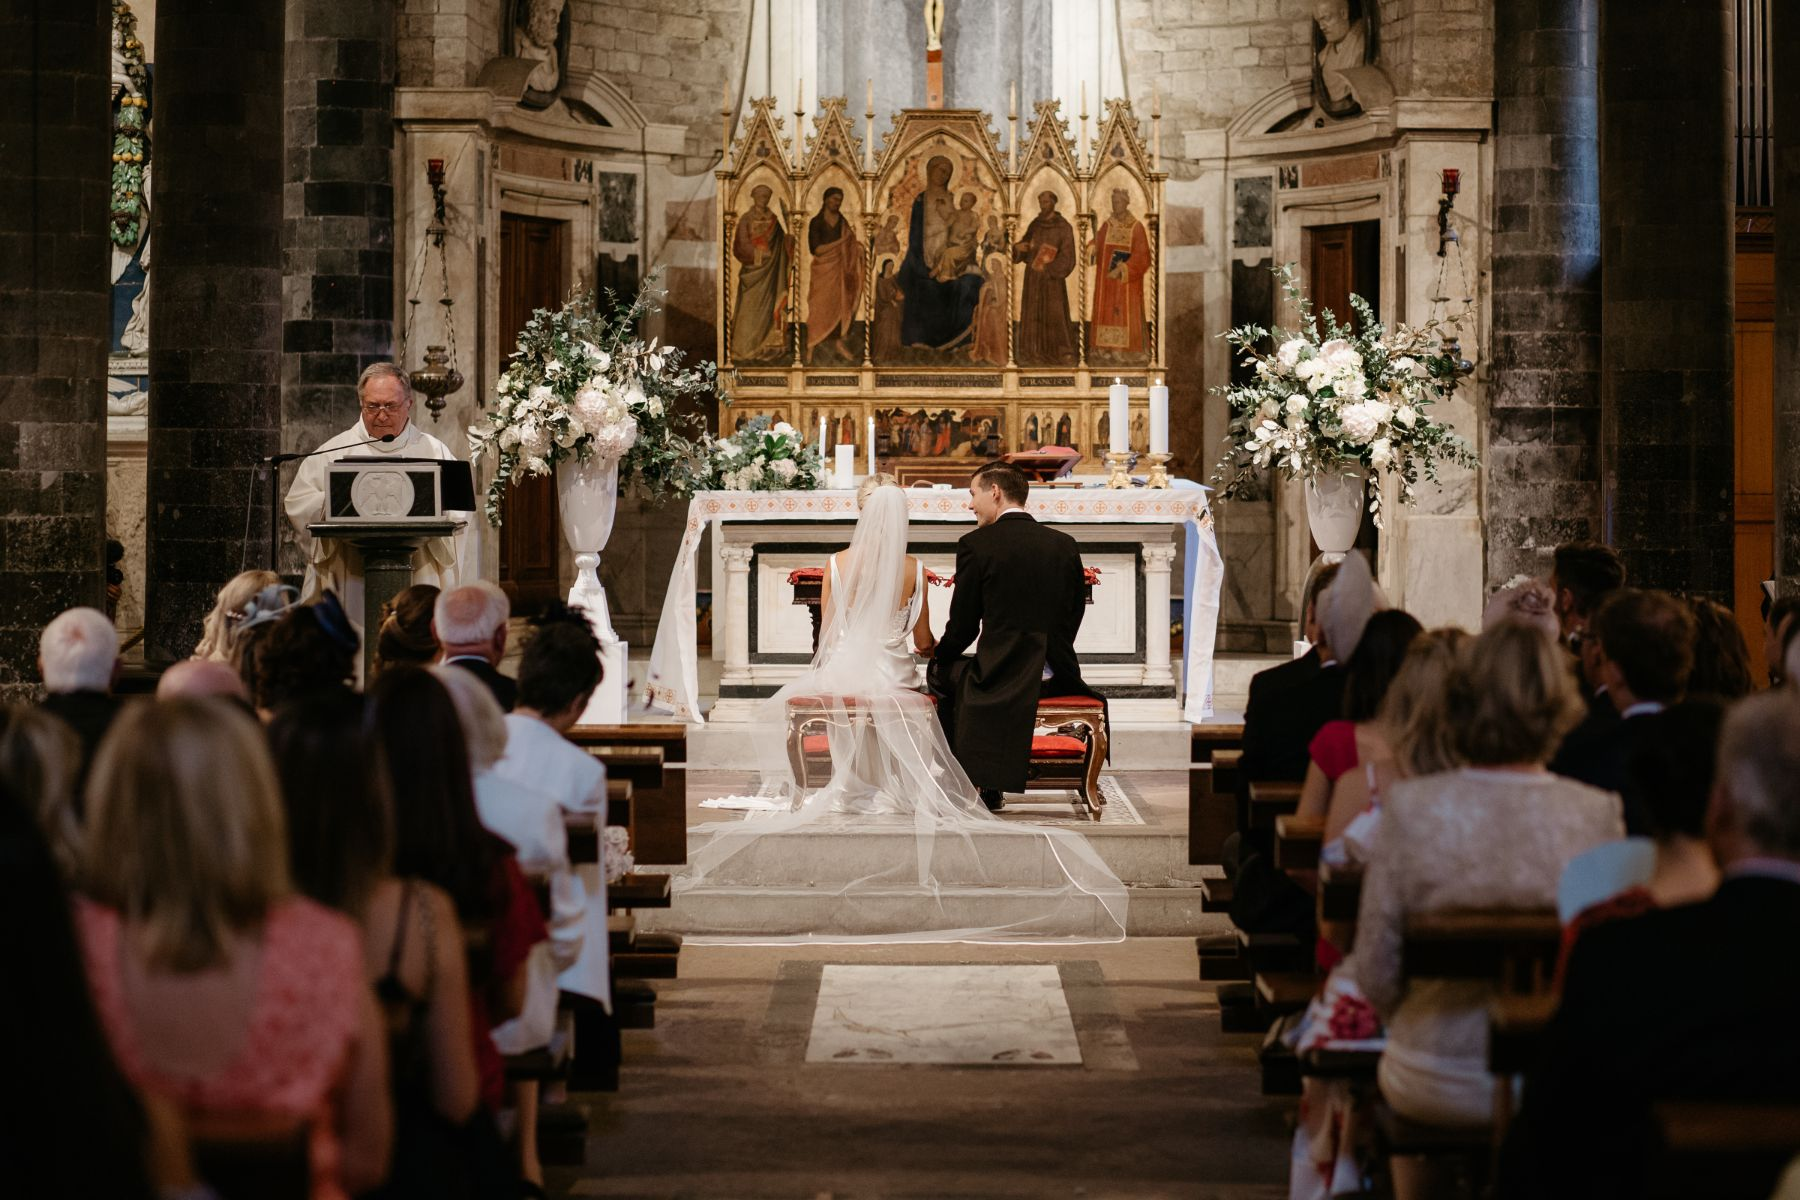 Bride and groom during ceremony in cathedral.